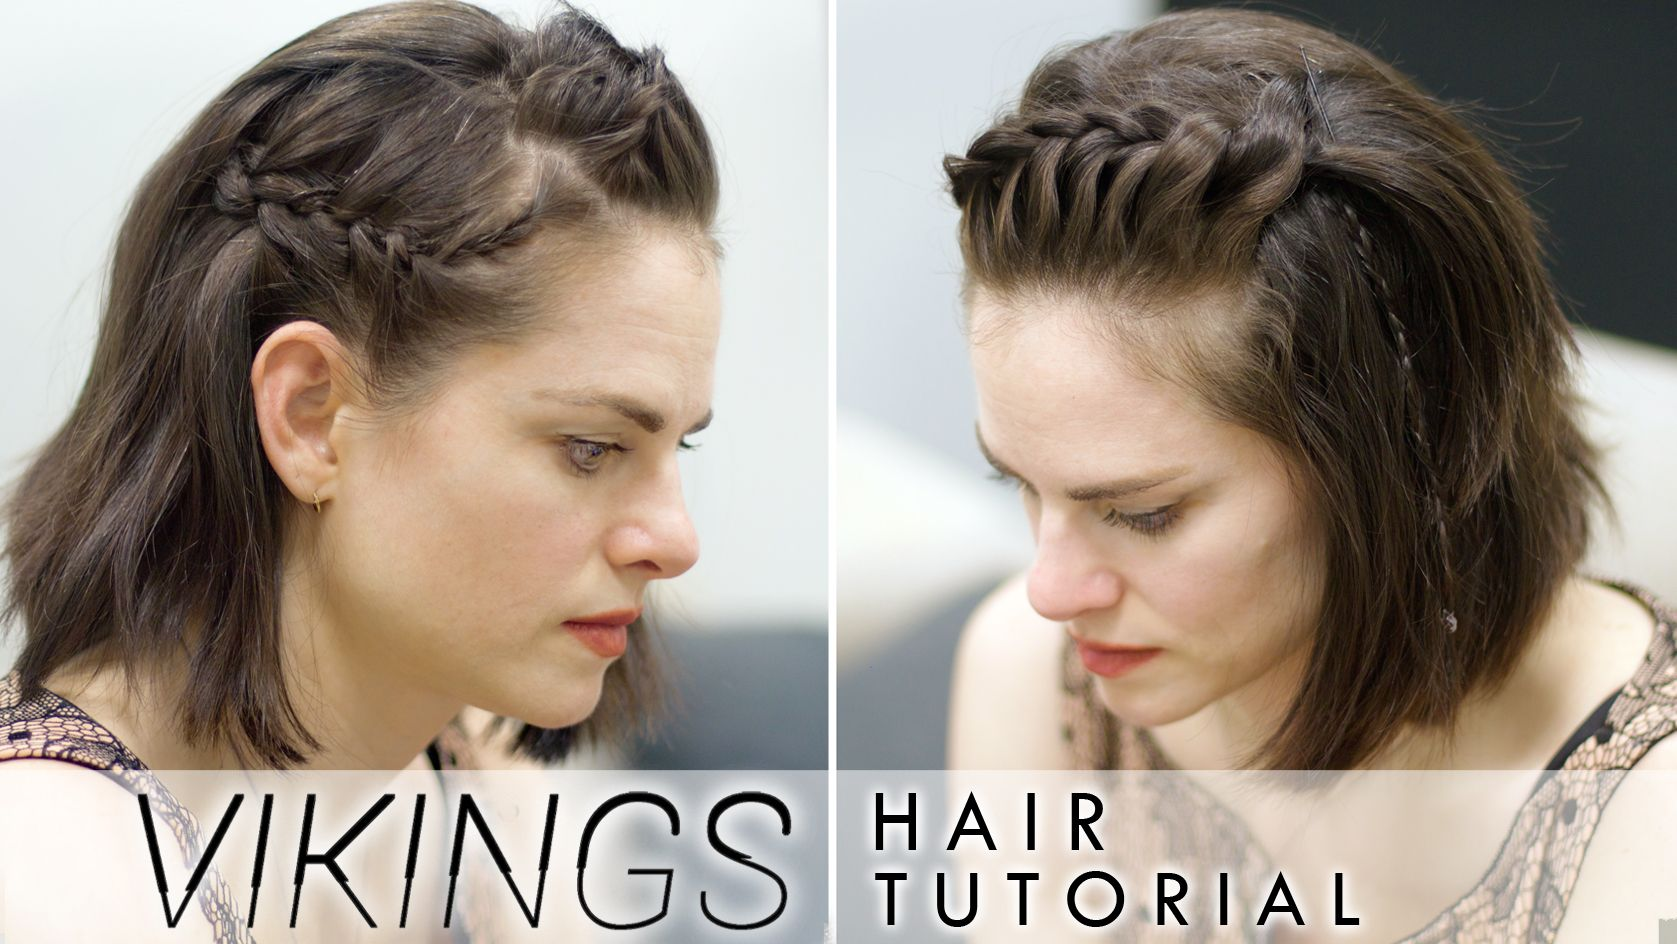 Amy Bailey On Viking Braids For Short Hair Viking Hair Short Hair Braids Tutorial Short Hair Tutorial